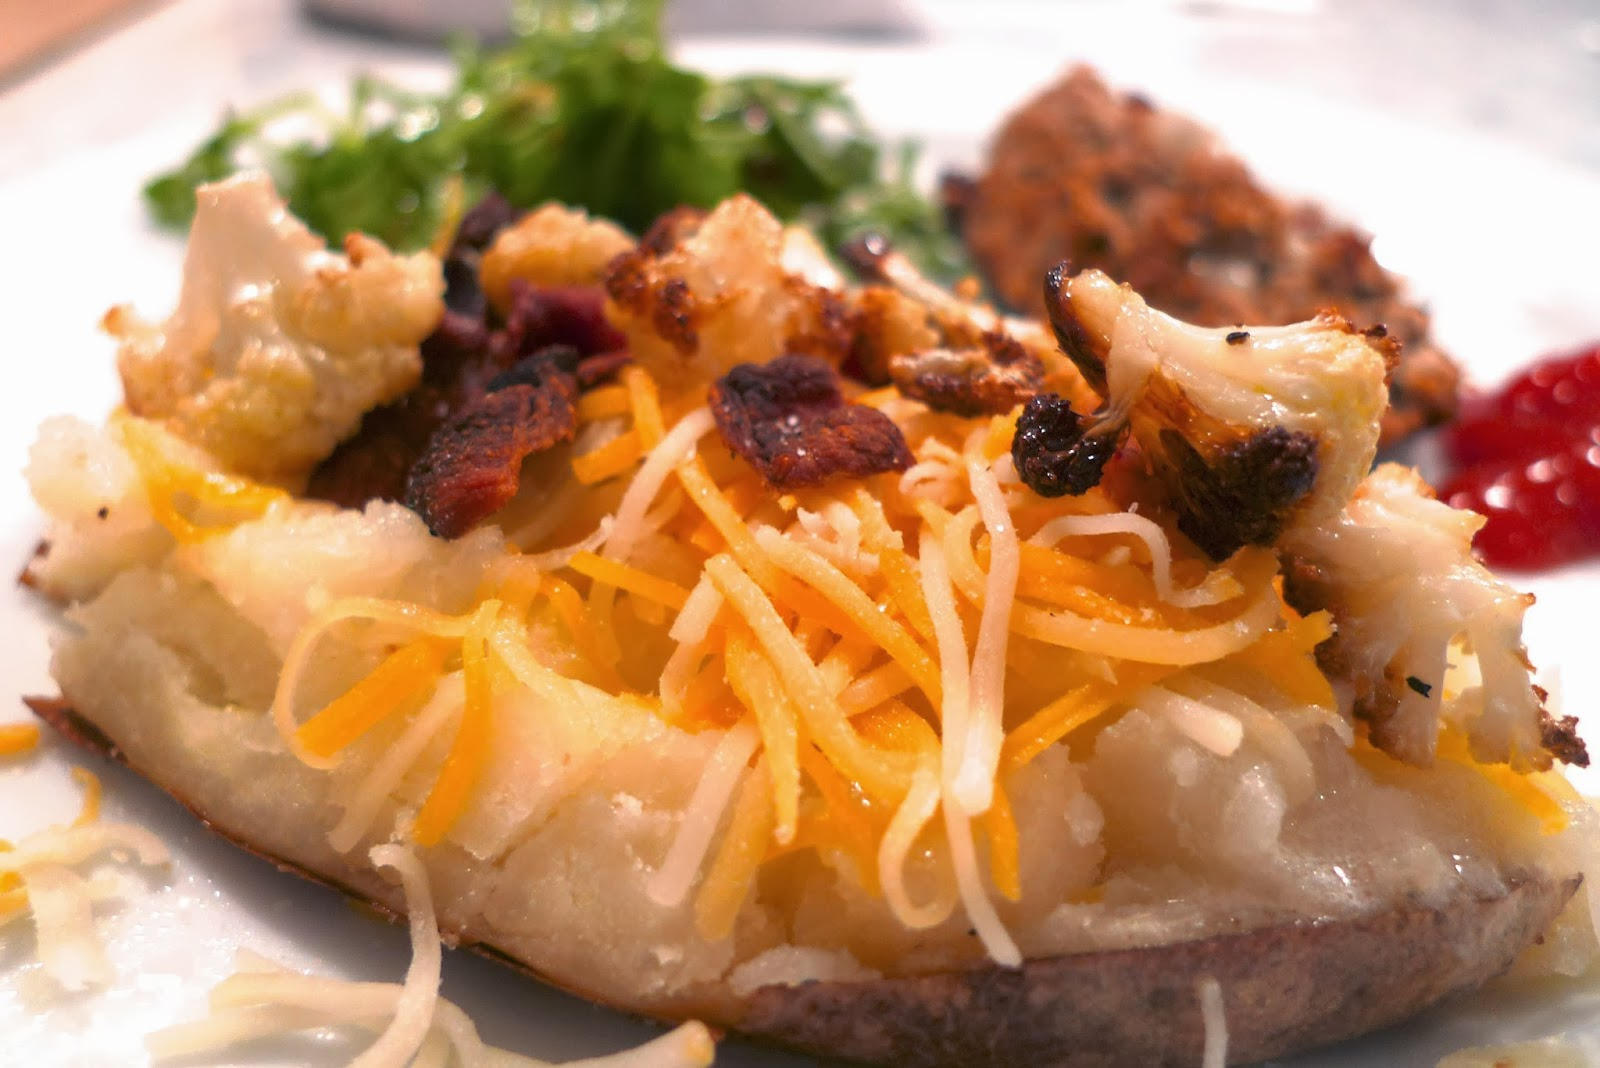 Siriously Delicious Baked Potatoes